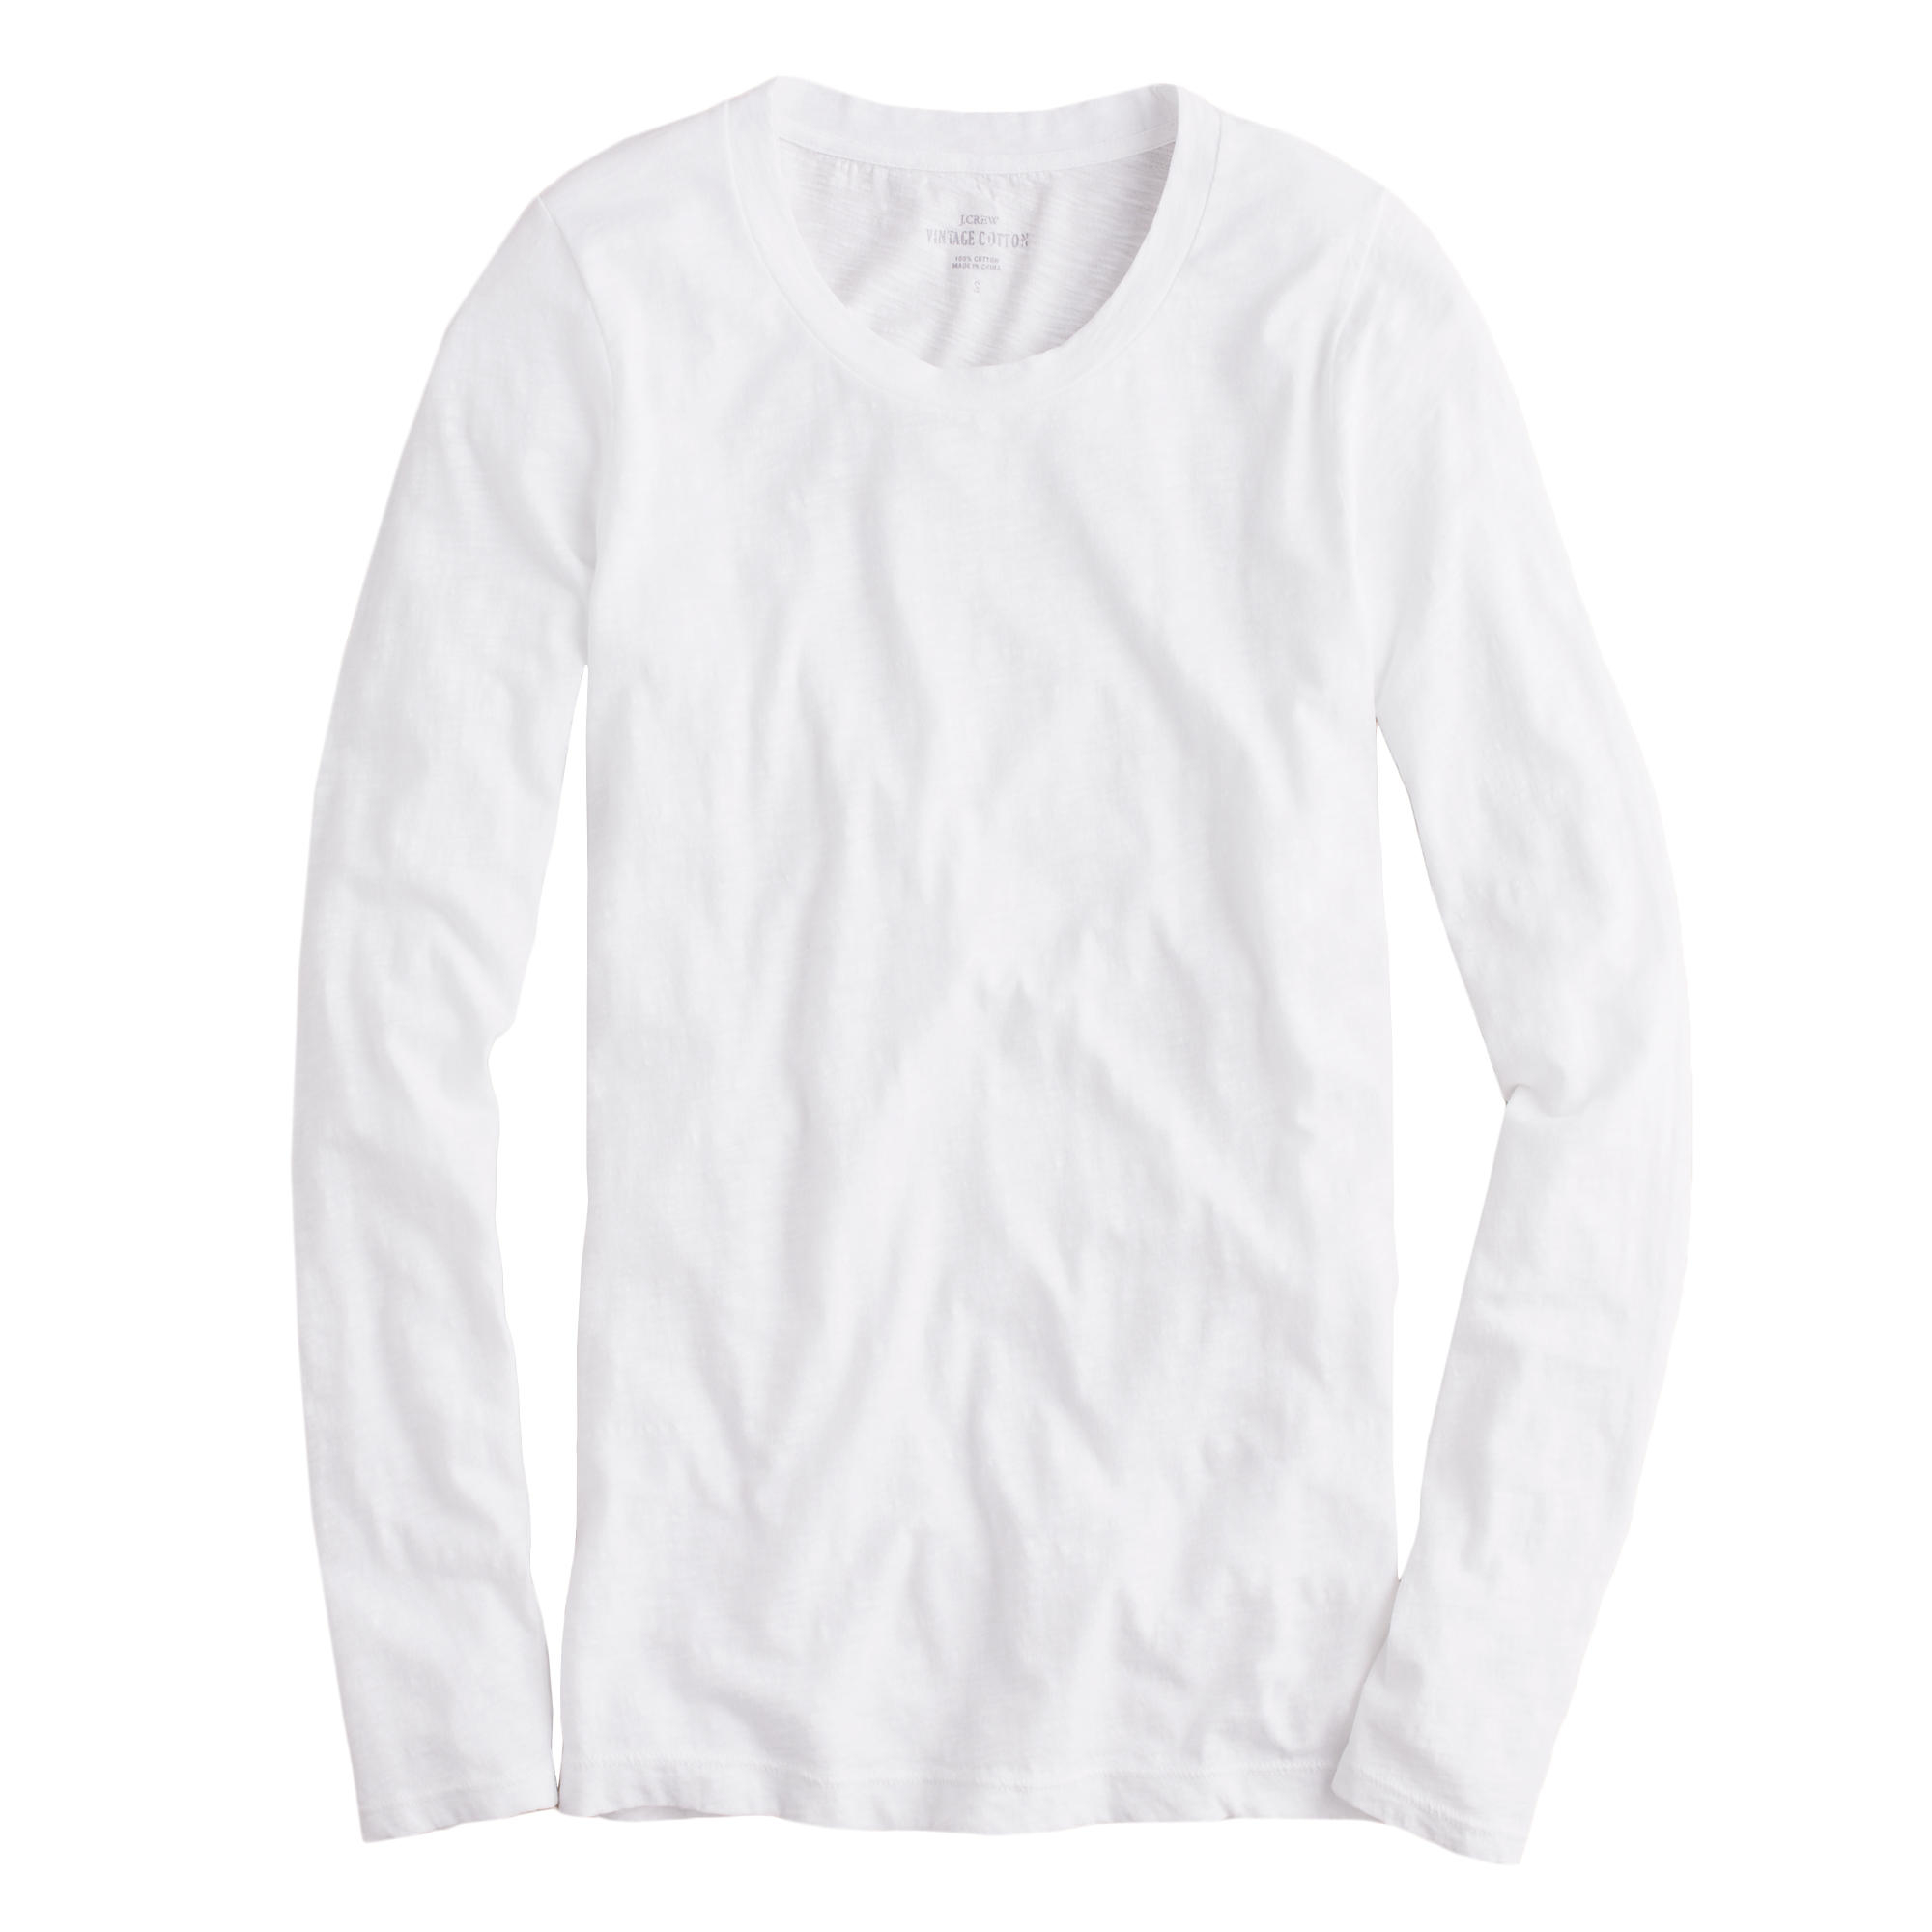 Petite Vintage Cotton Long Sleeve T Shirt In White